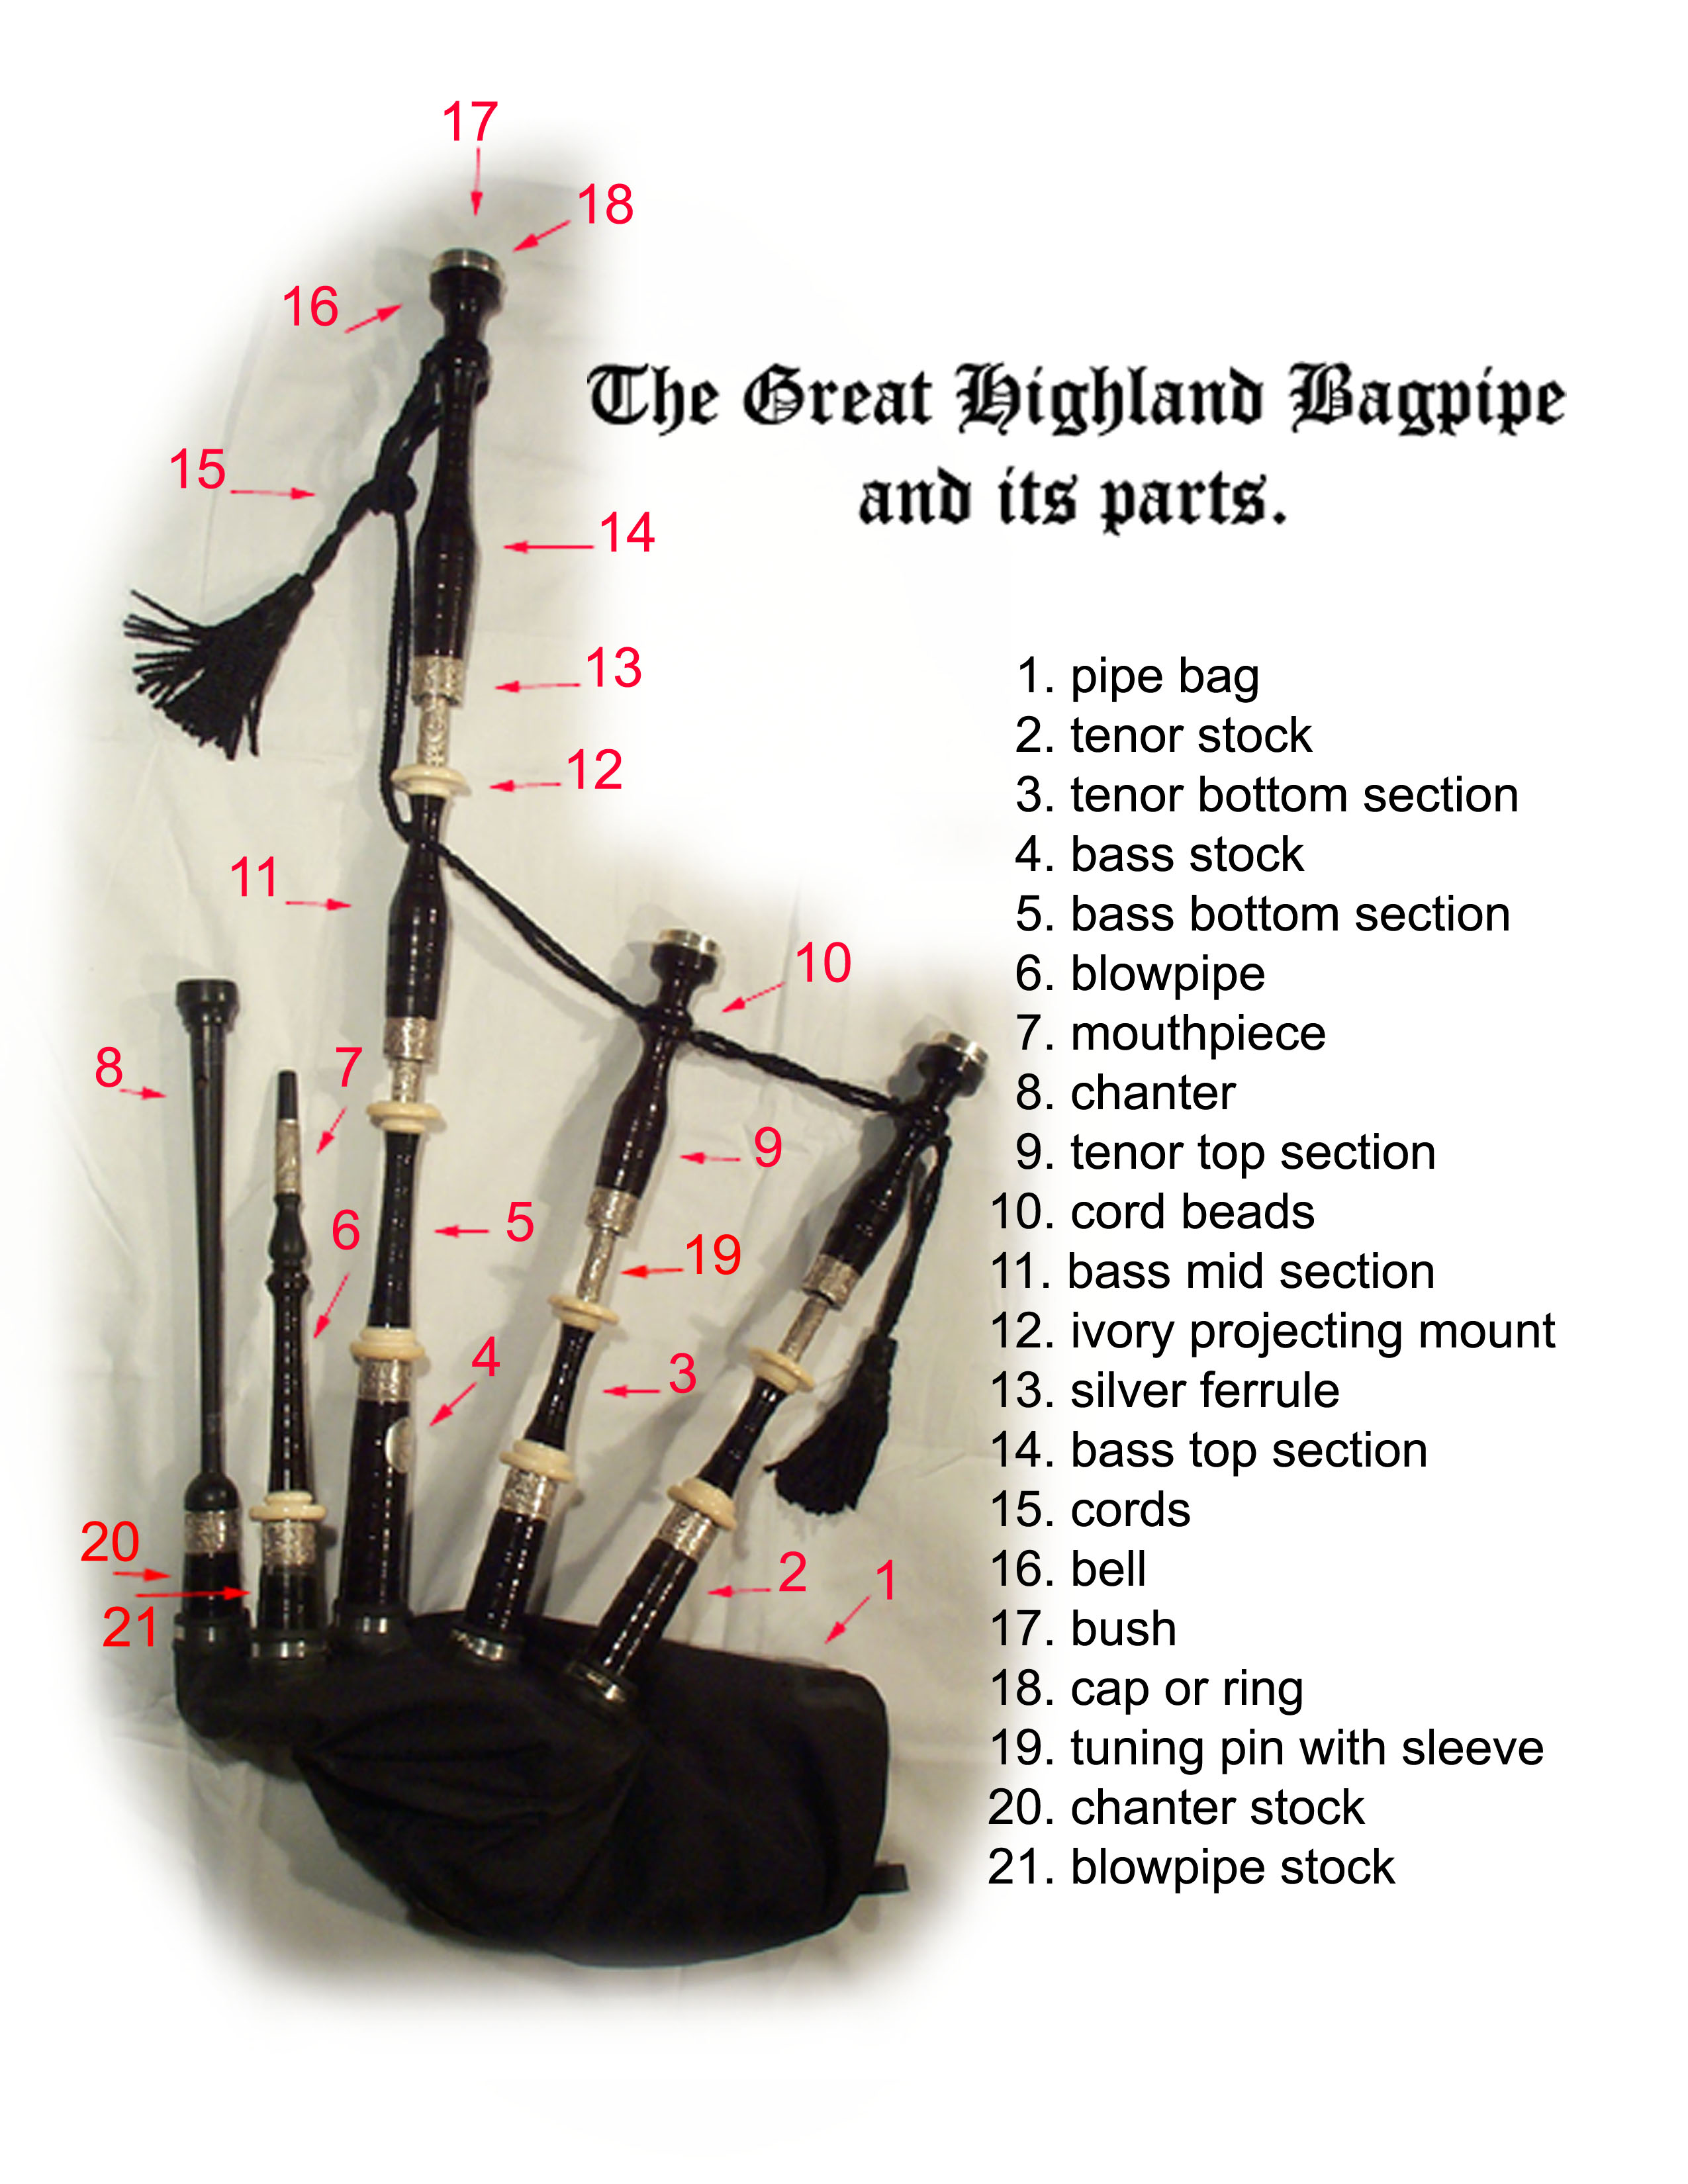 Bagpipe Parts2